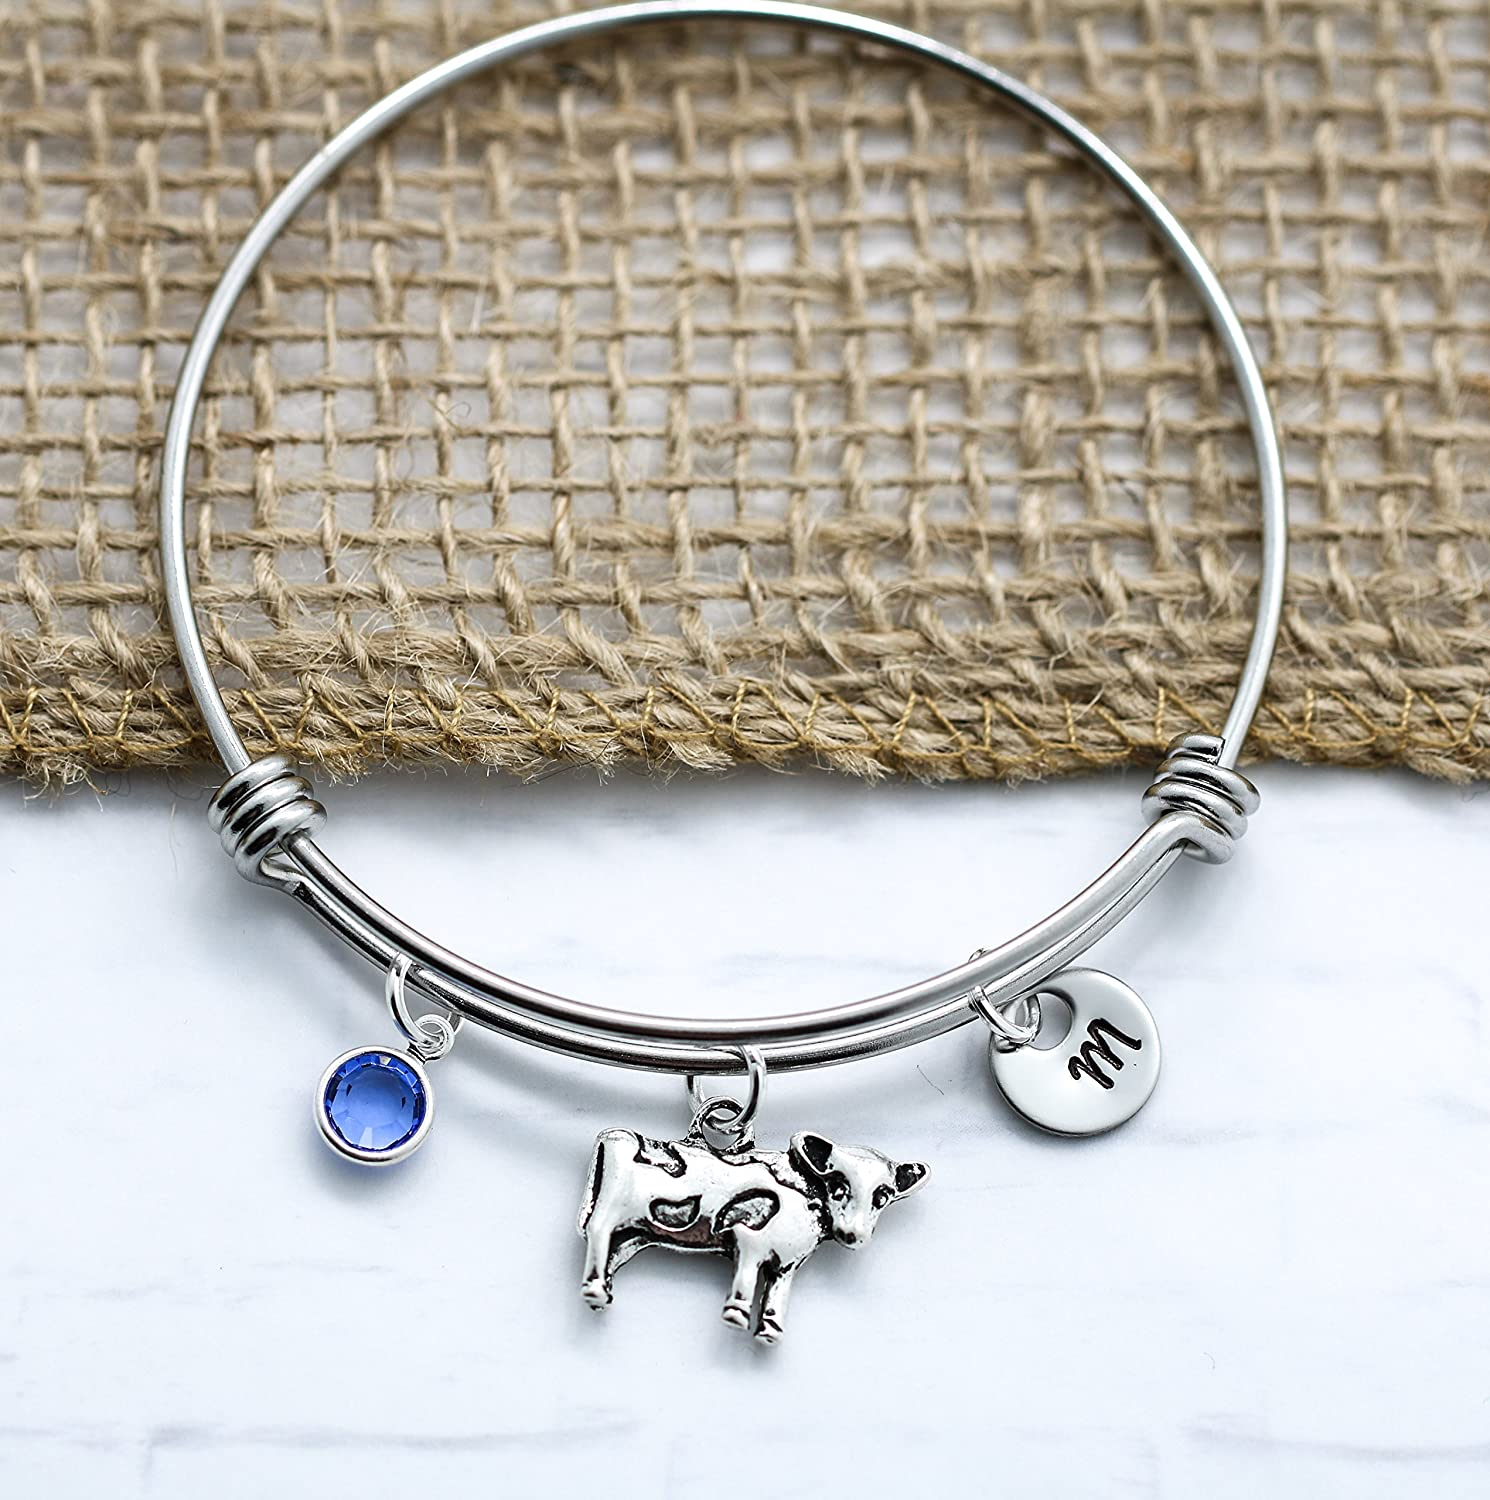 7495bdb2b09e Amazon.com  Cow Bracelet for Women - Silver Cow Themed Gift Ideas -  Personalized Birthstone   Initial - Fast Shipping  Handmade